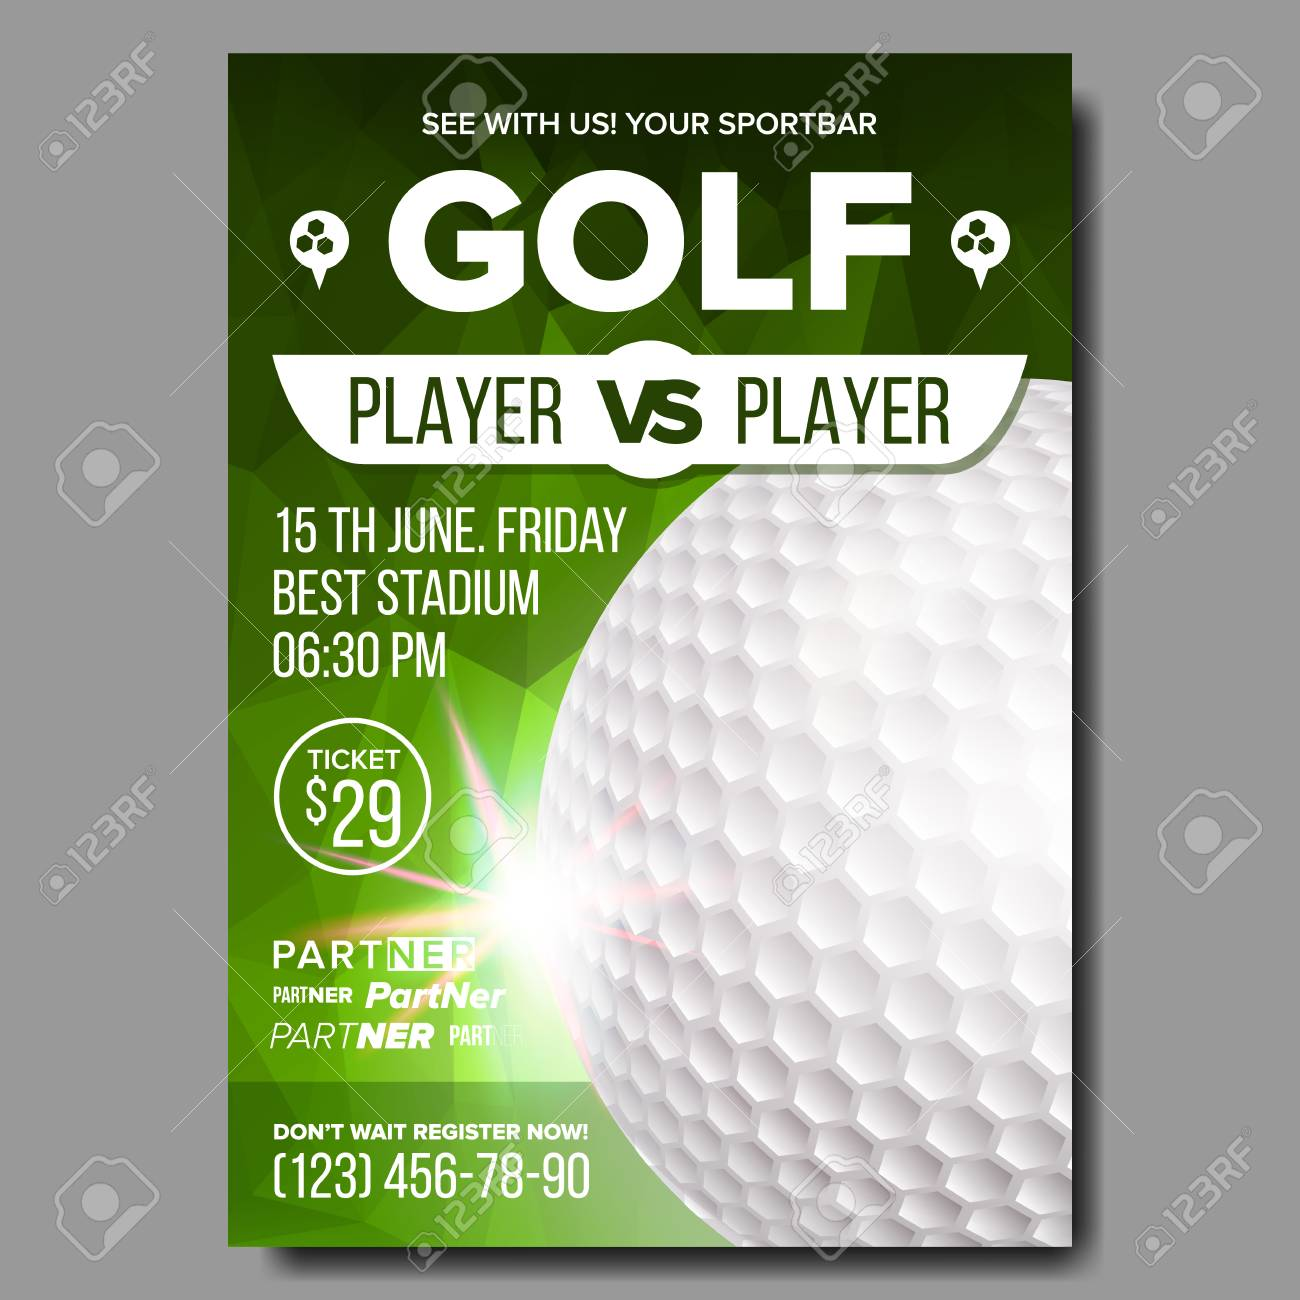 Golf Poster Vector Banner Advertising Sport Event Announcement Stock Photo Picture And Royalty Free Image Image 104812878